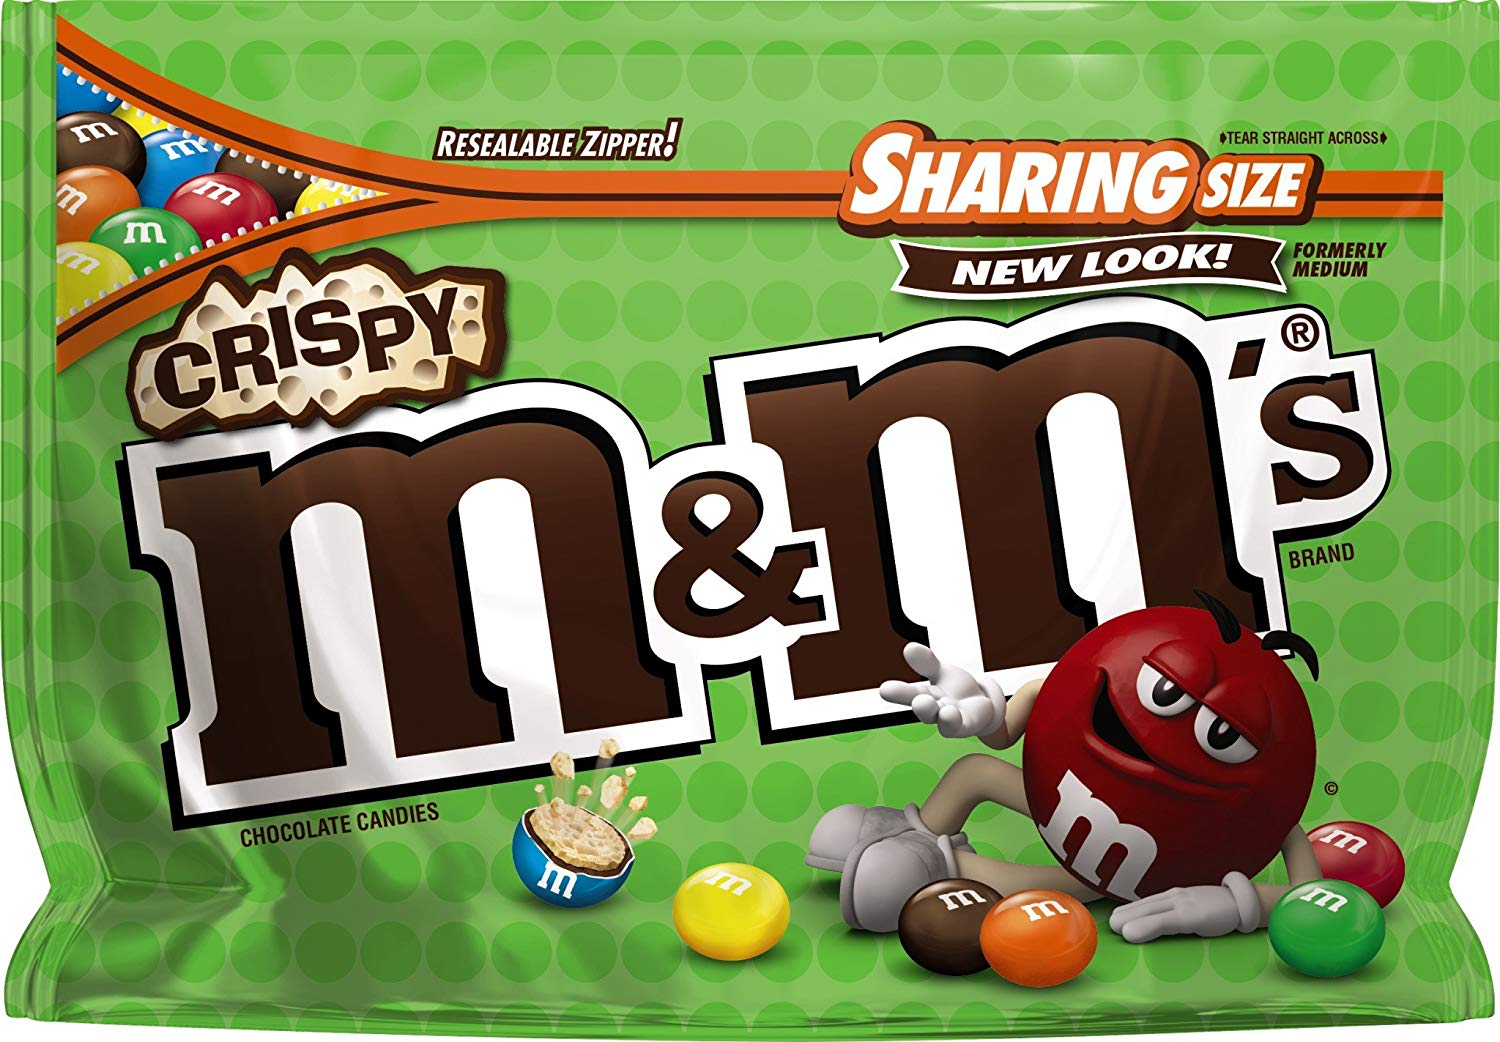 M&m candy clipart free jpg free library M&M\'S Crispy Chocolate Candy Sharing Size 8-Ounce Bag jpg free library